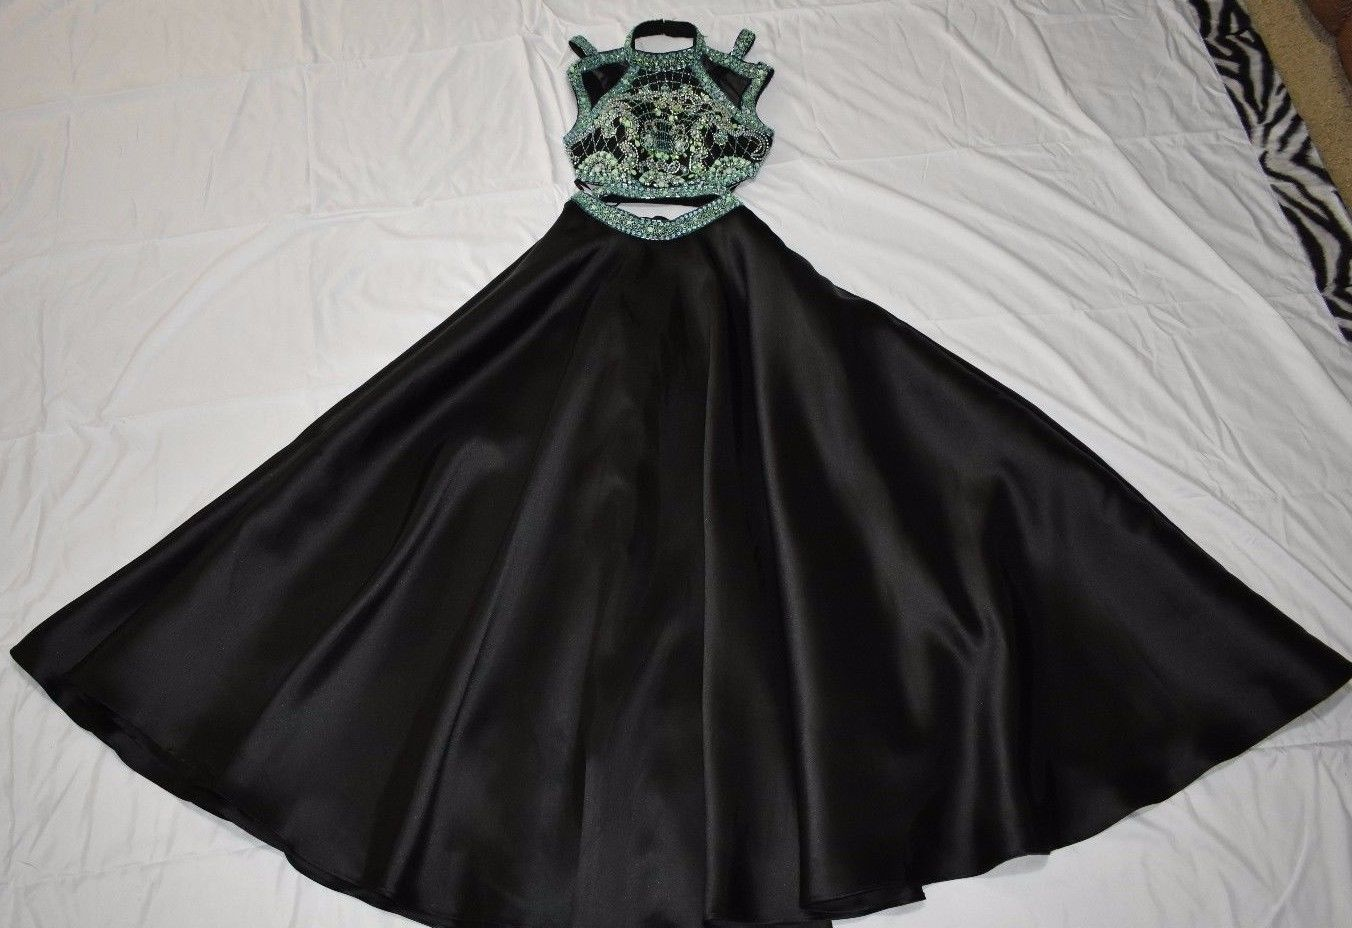 Alyce paris piece prom dress size black with teallight green